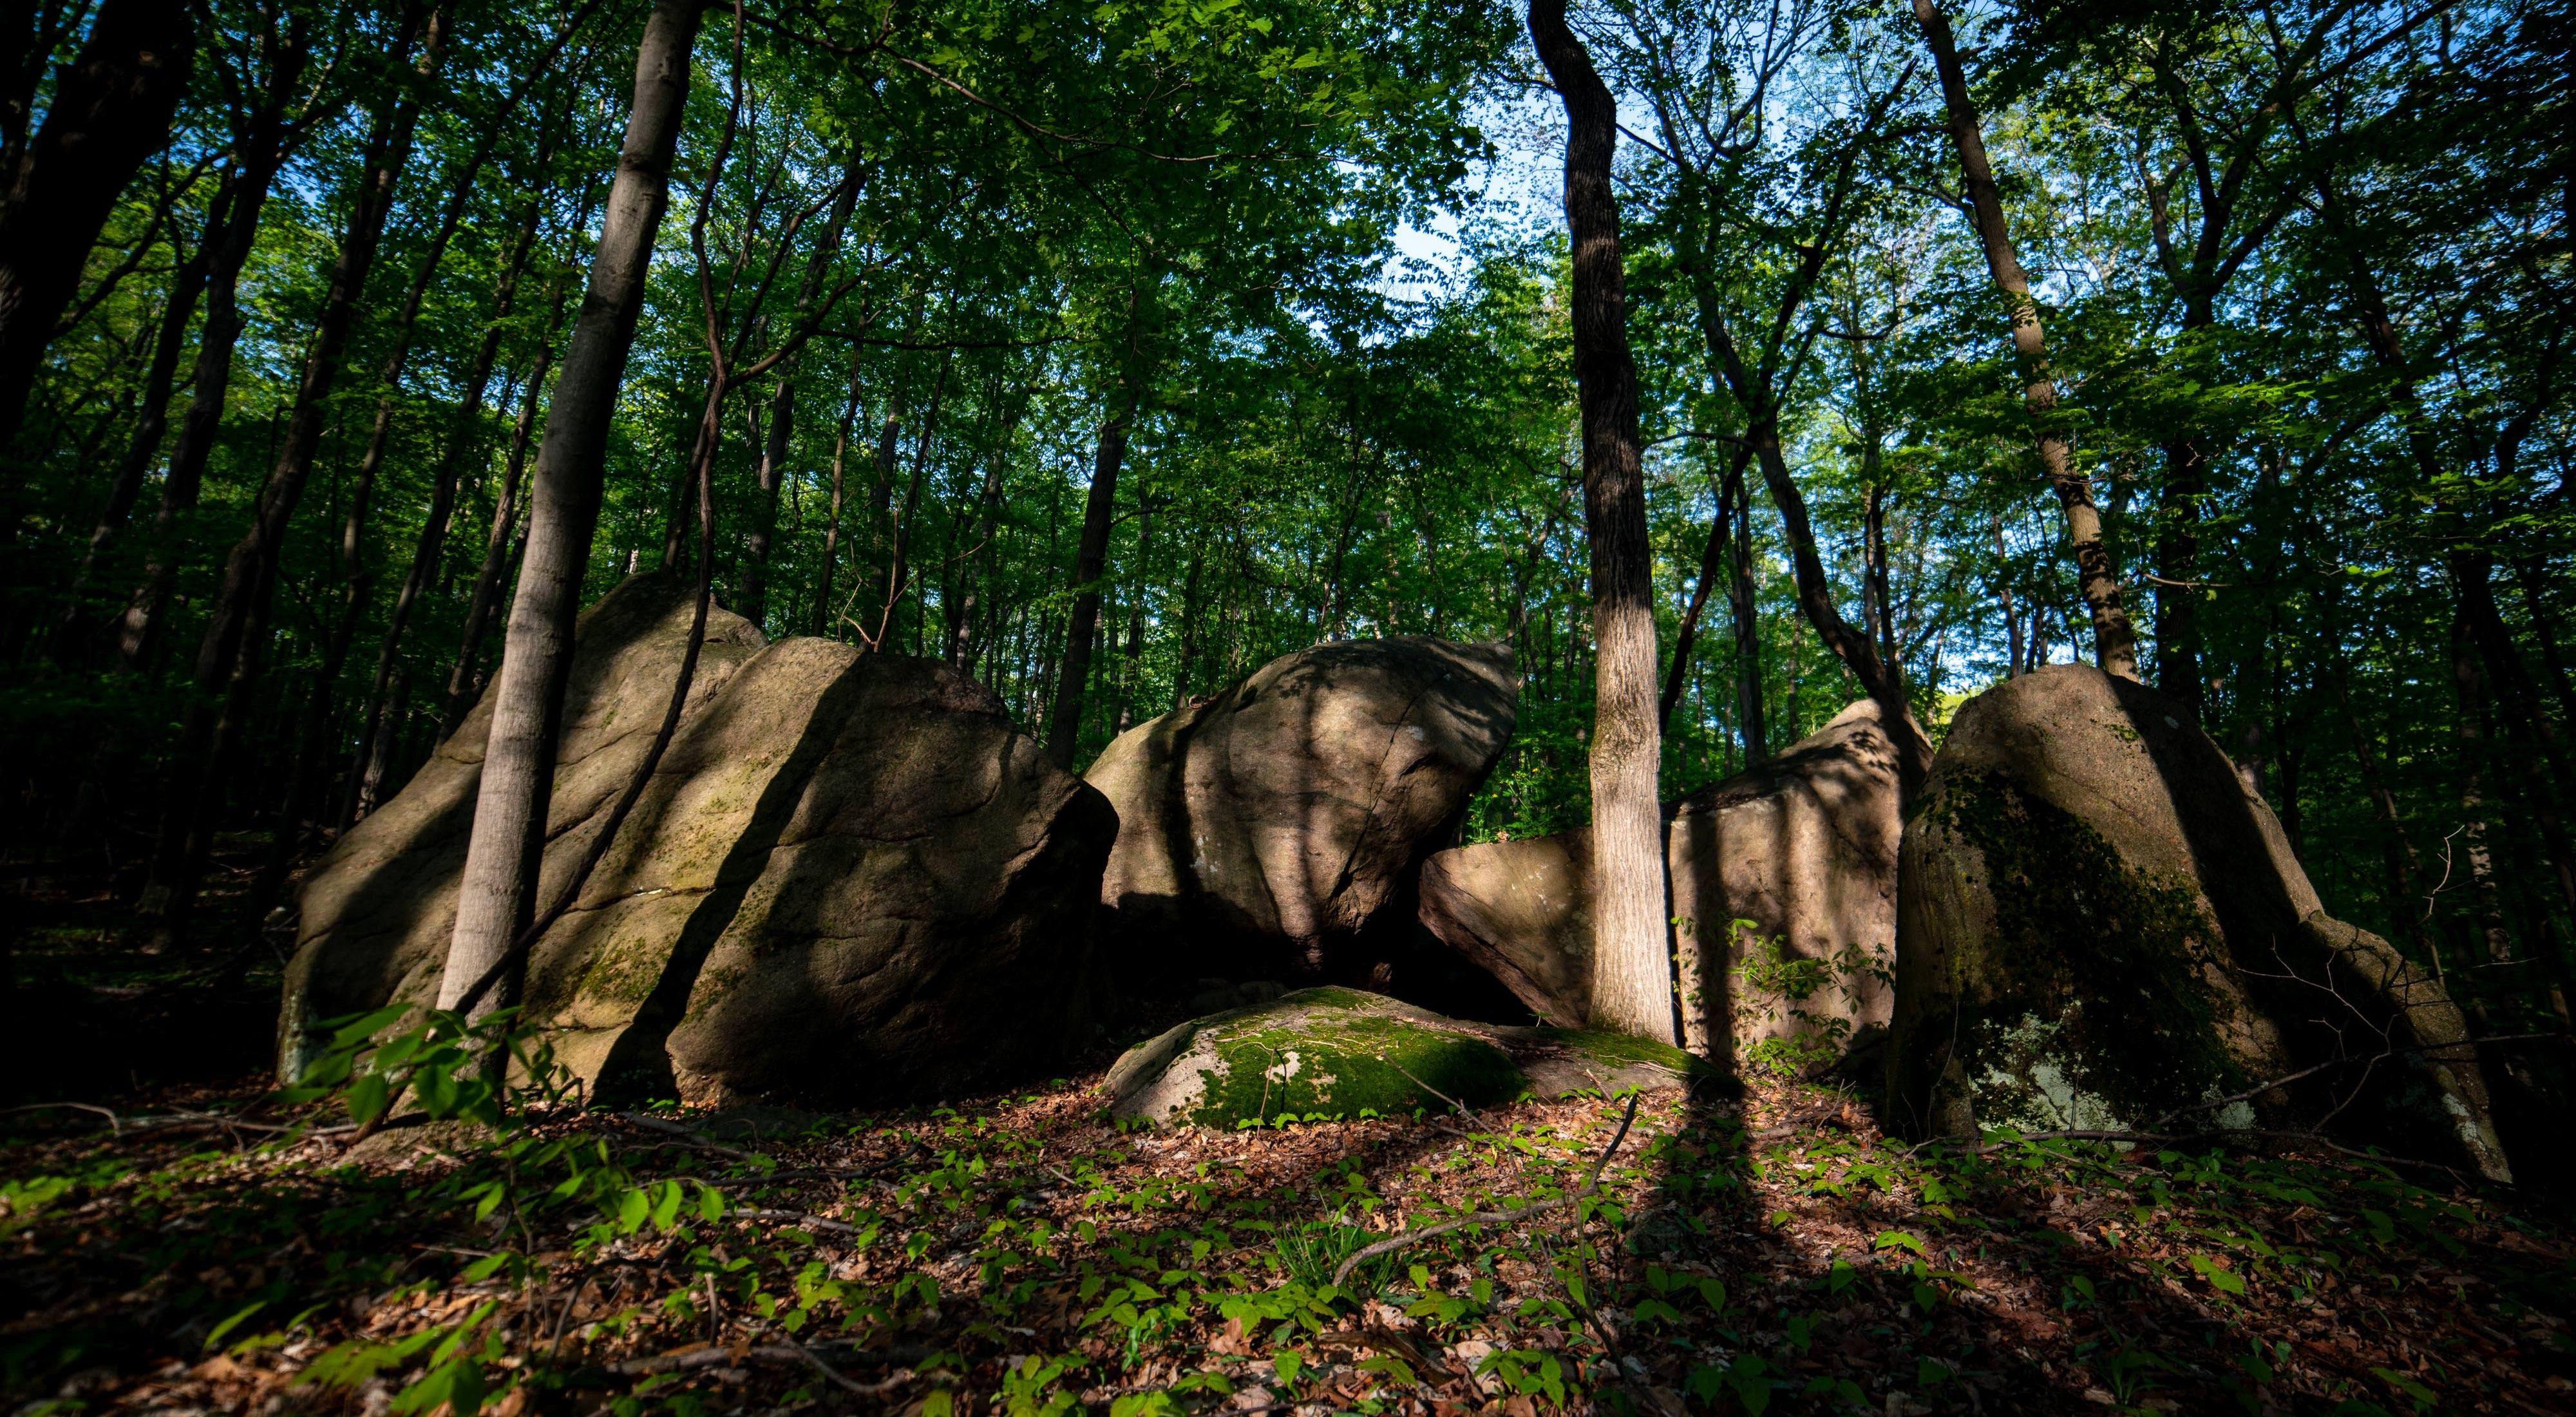 Shadows cast over boulders and a few trees.